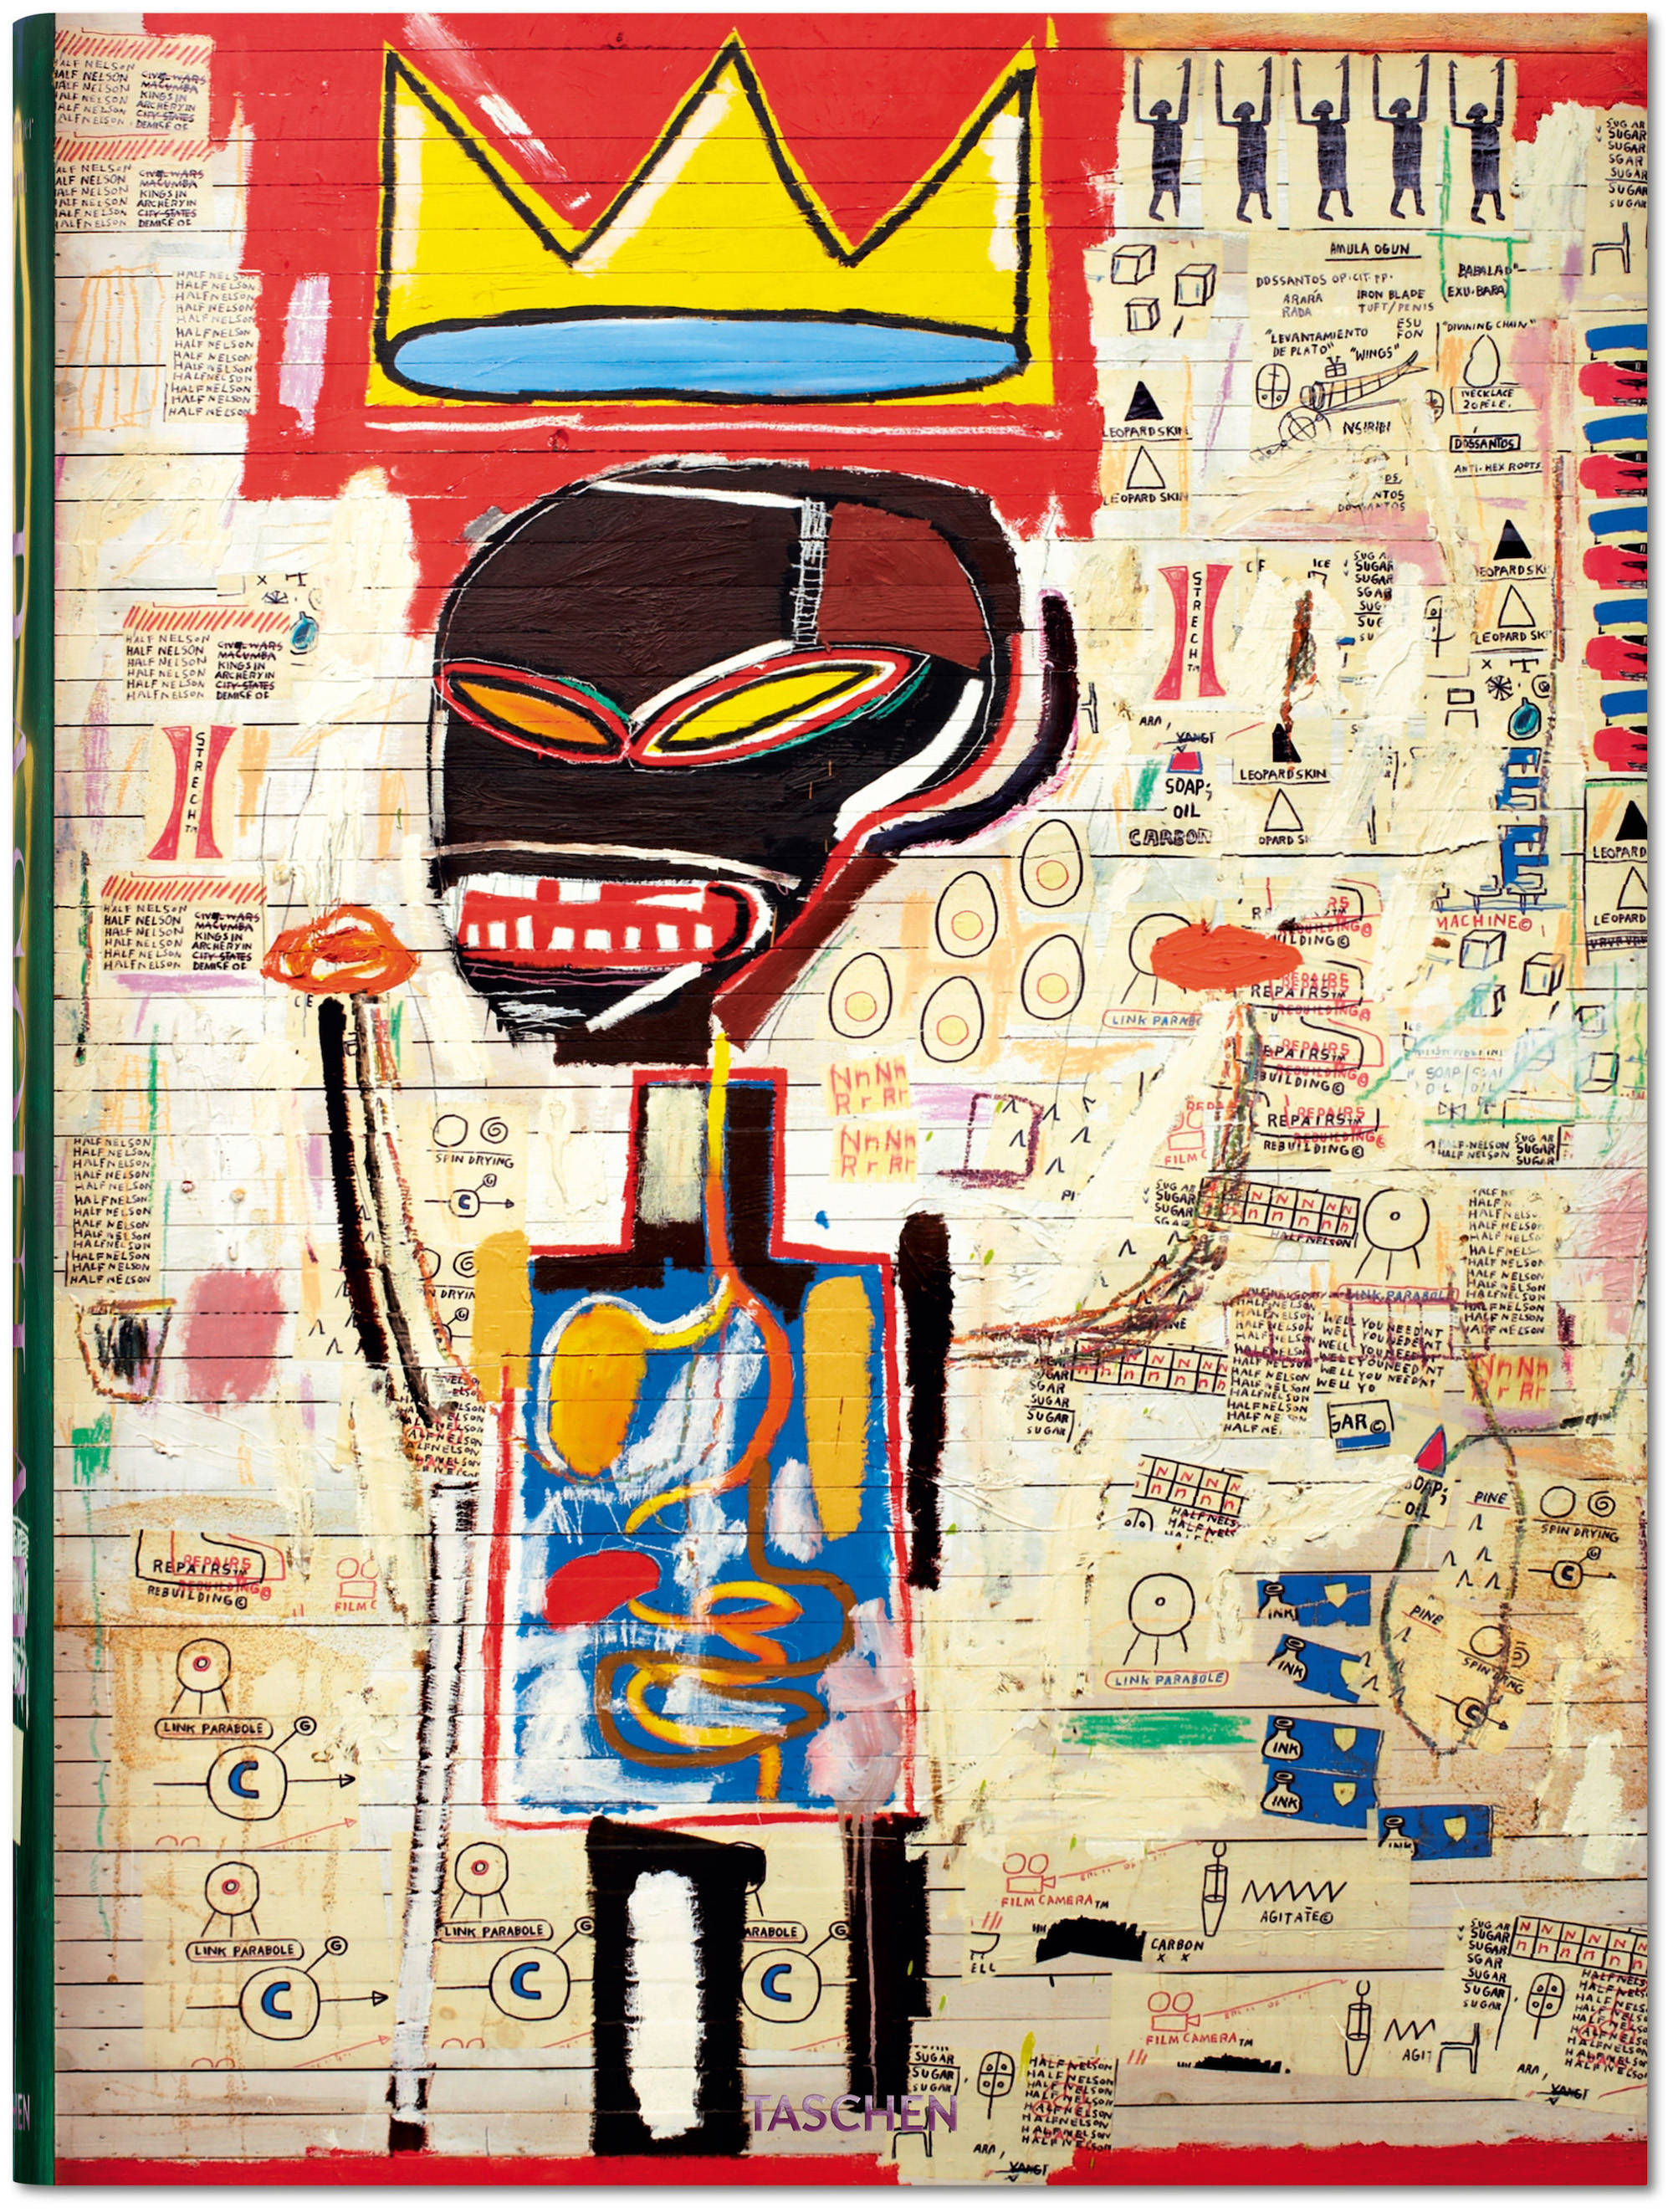 Arte Digital World Panjim Goa The Life And Works Of Jean Michel Basquiat A Supersized New Book